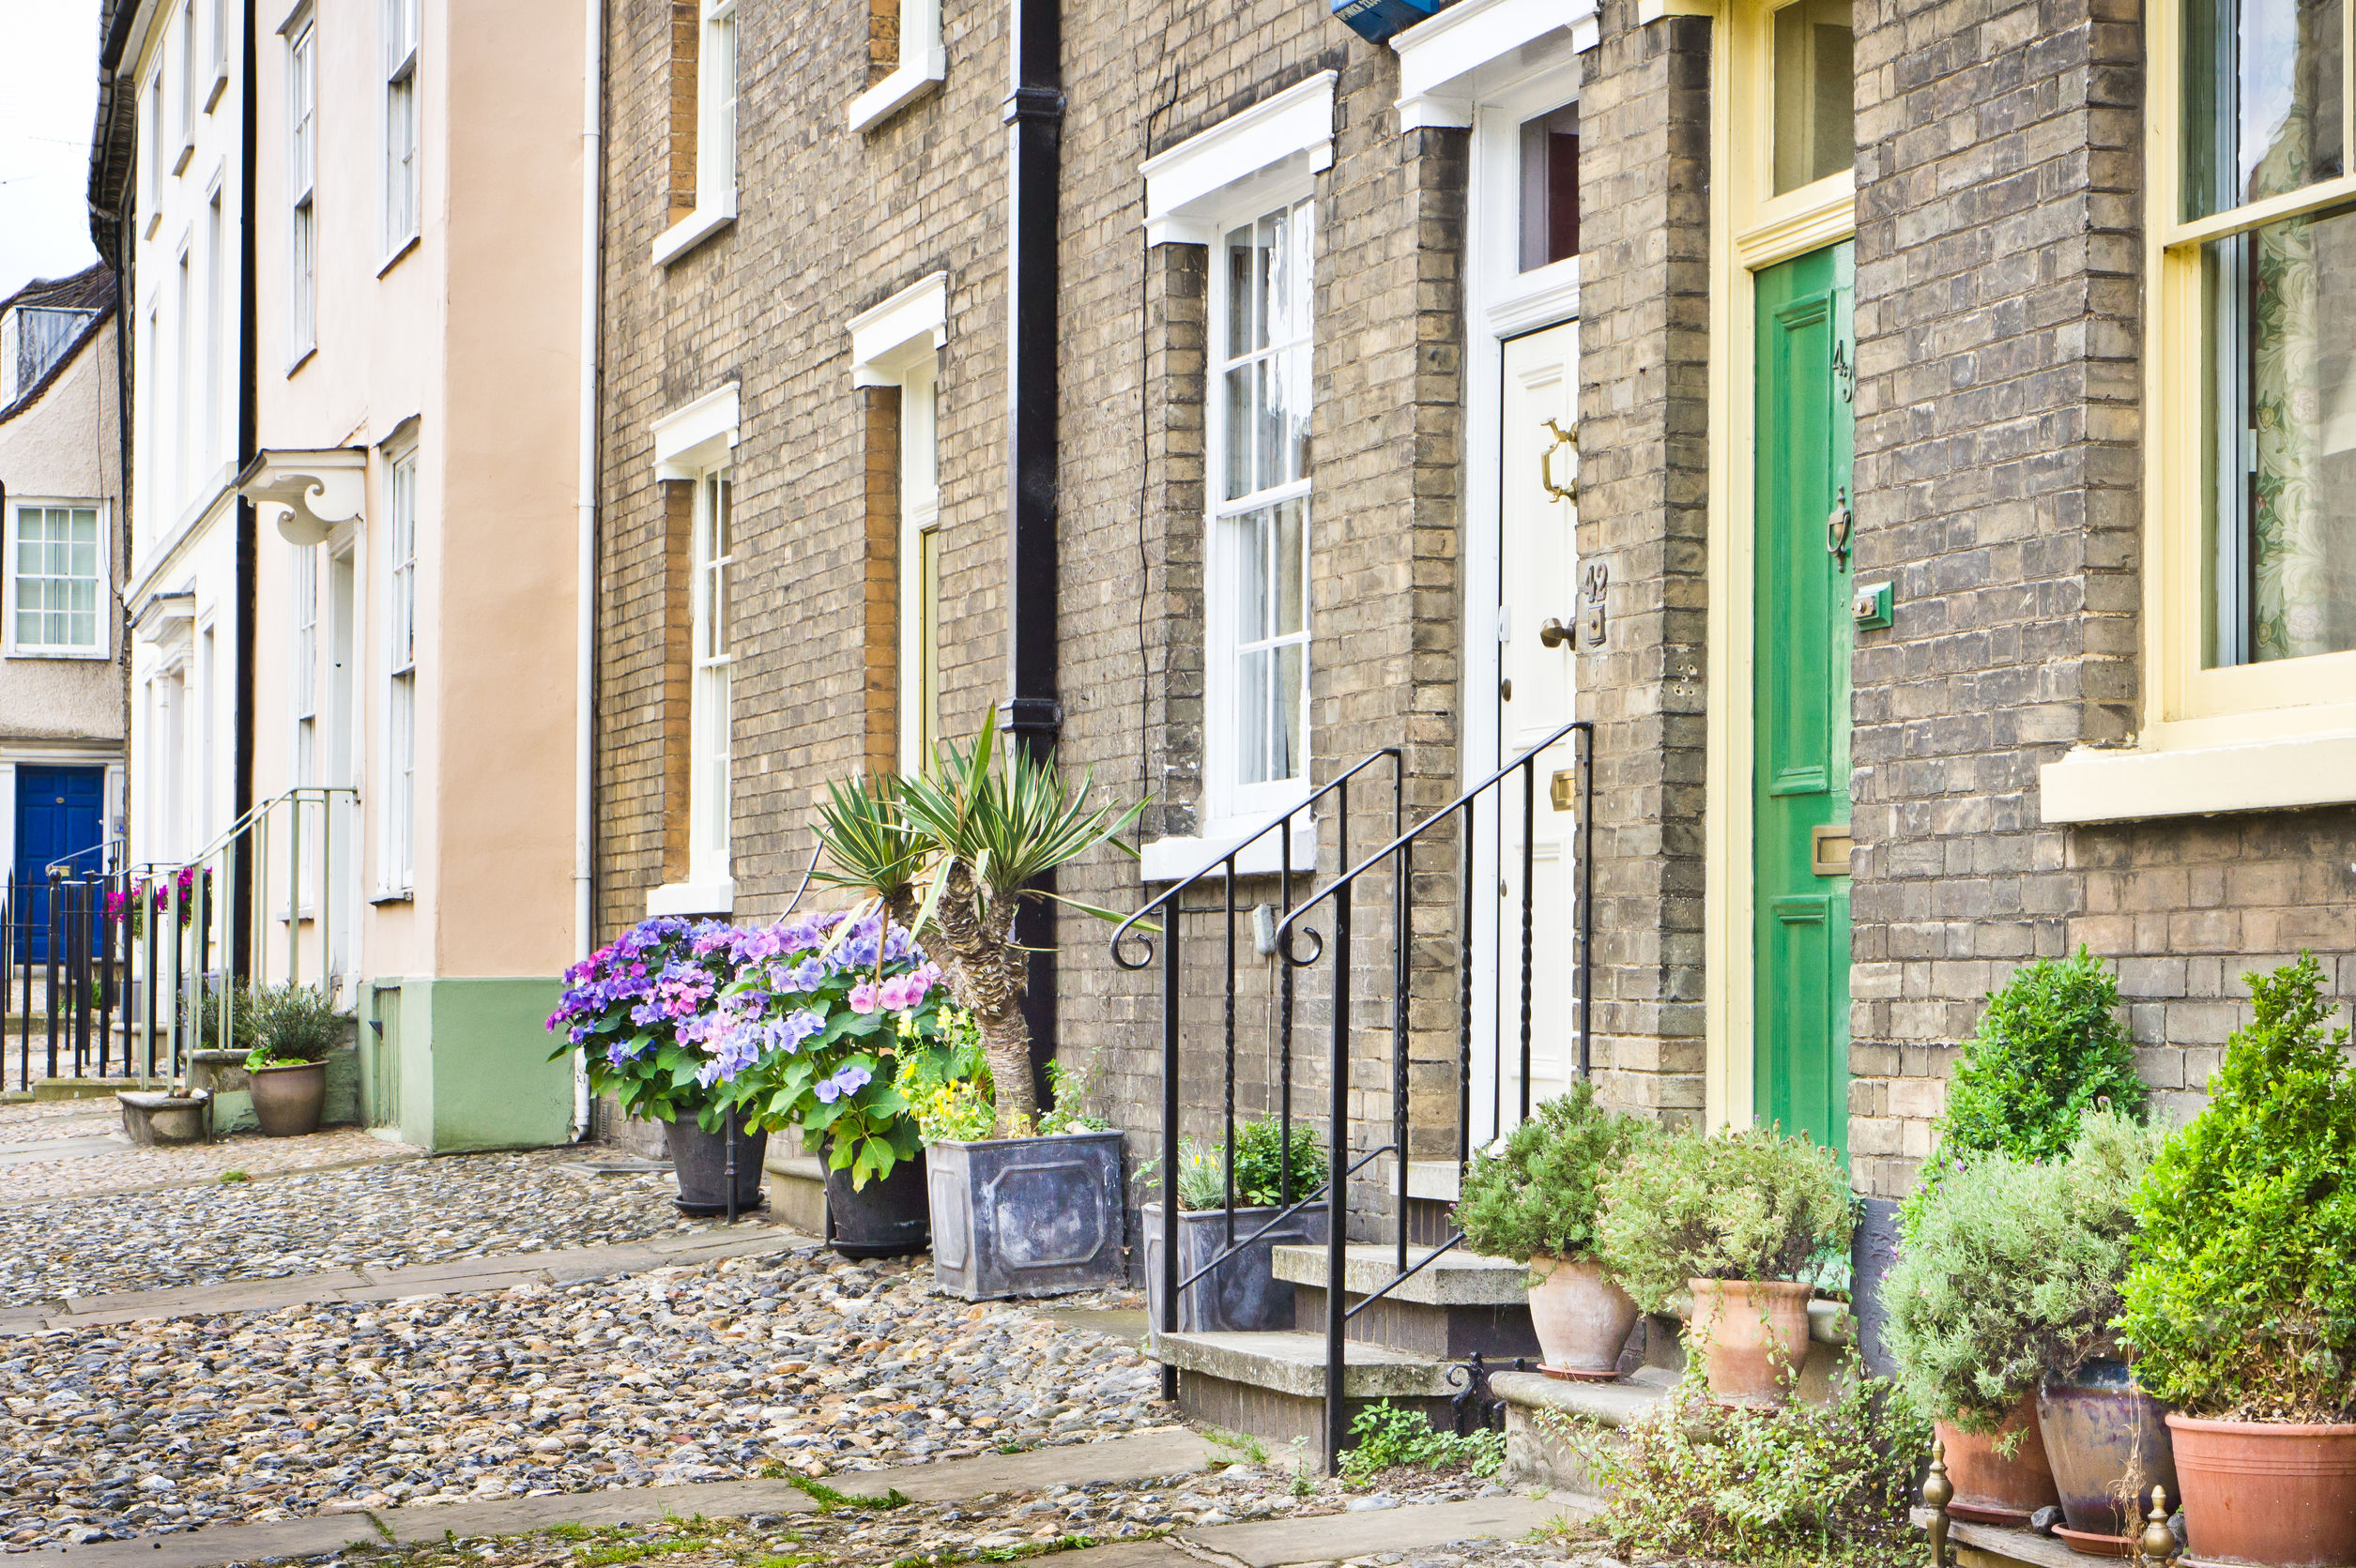 Town houses with plants in Bury St Edmunds, UK